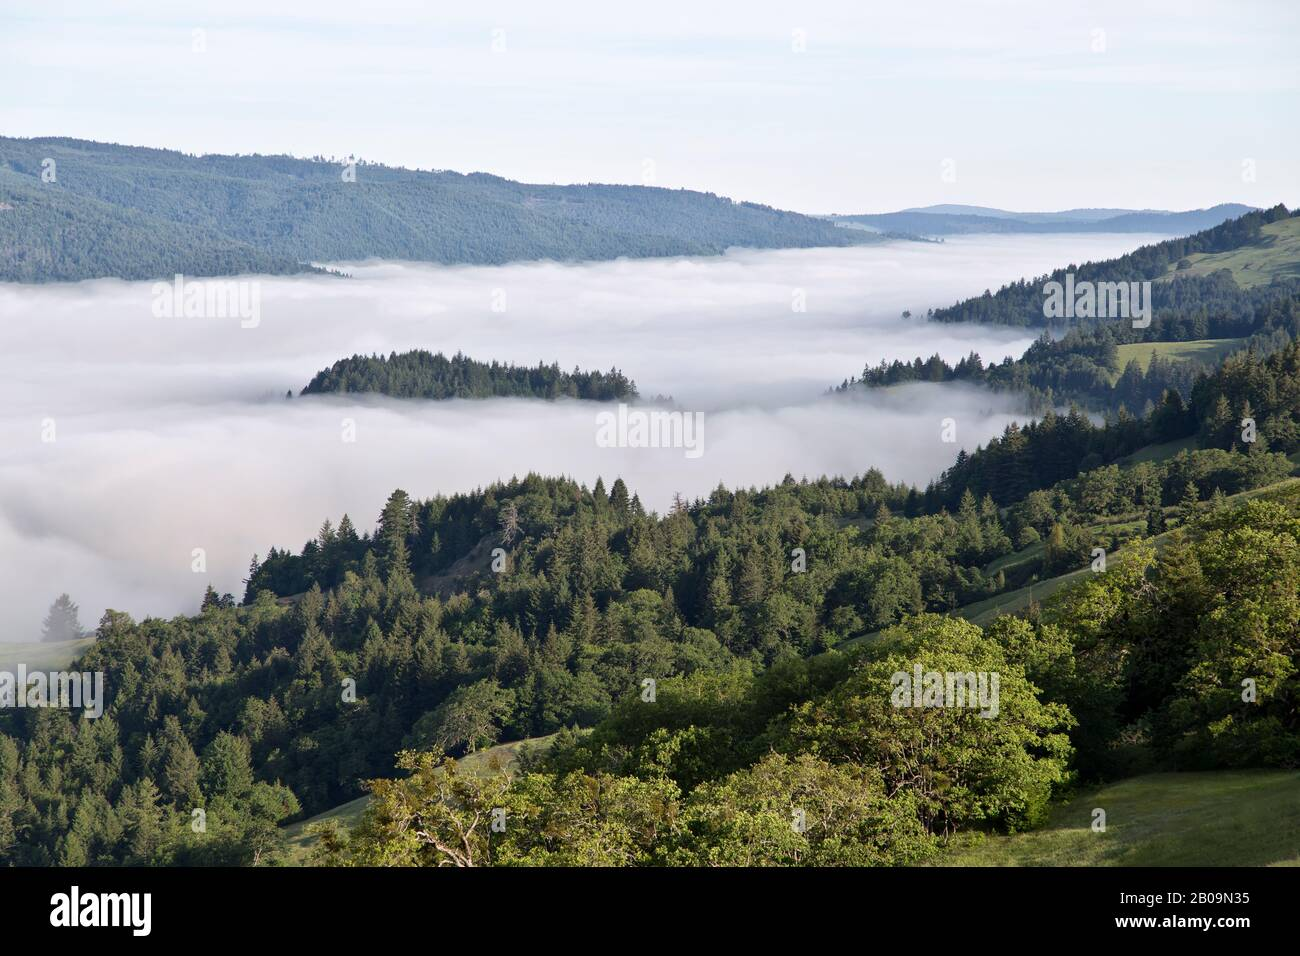 Influenced by Coastal fog, filled  Redwood Creek Basin, Berry Summit, California. Stock Photo